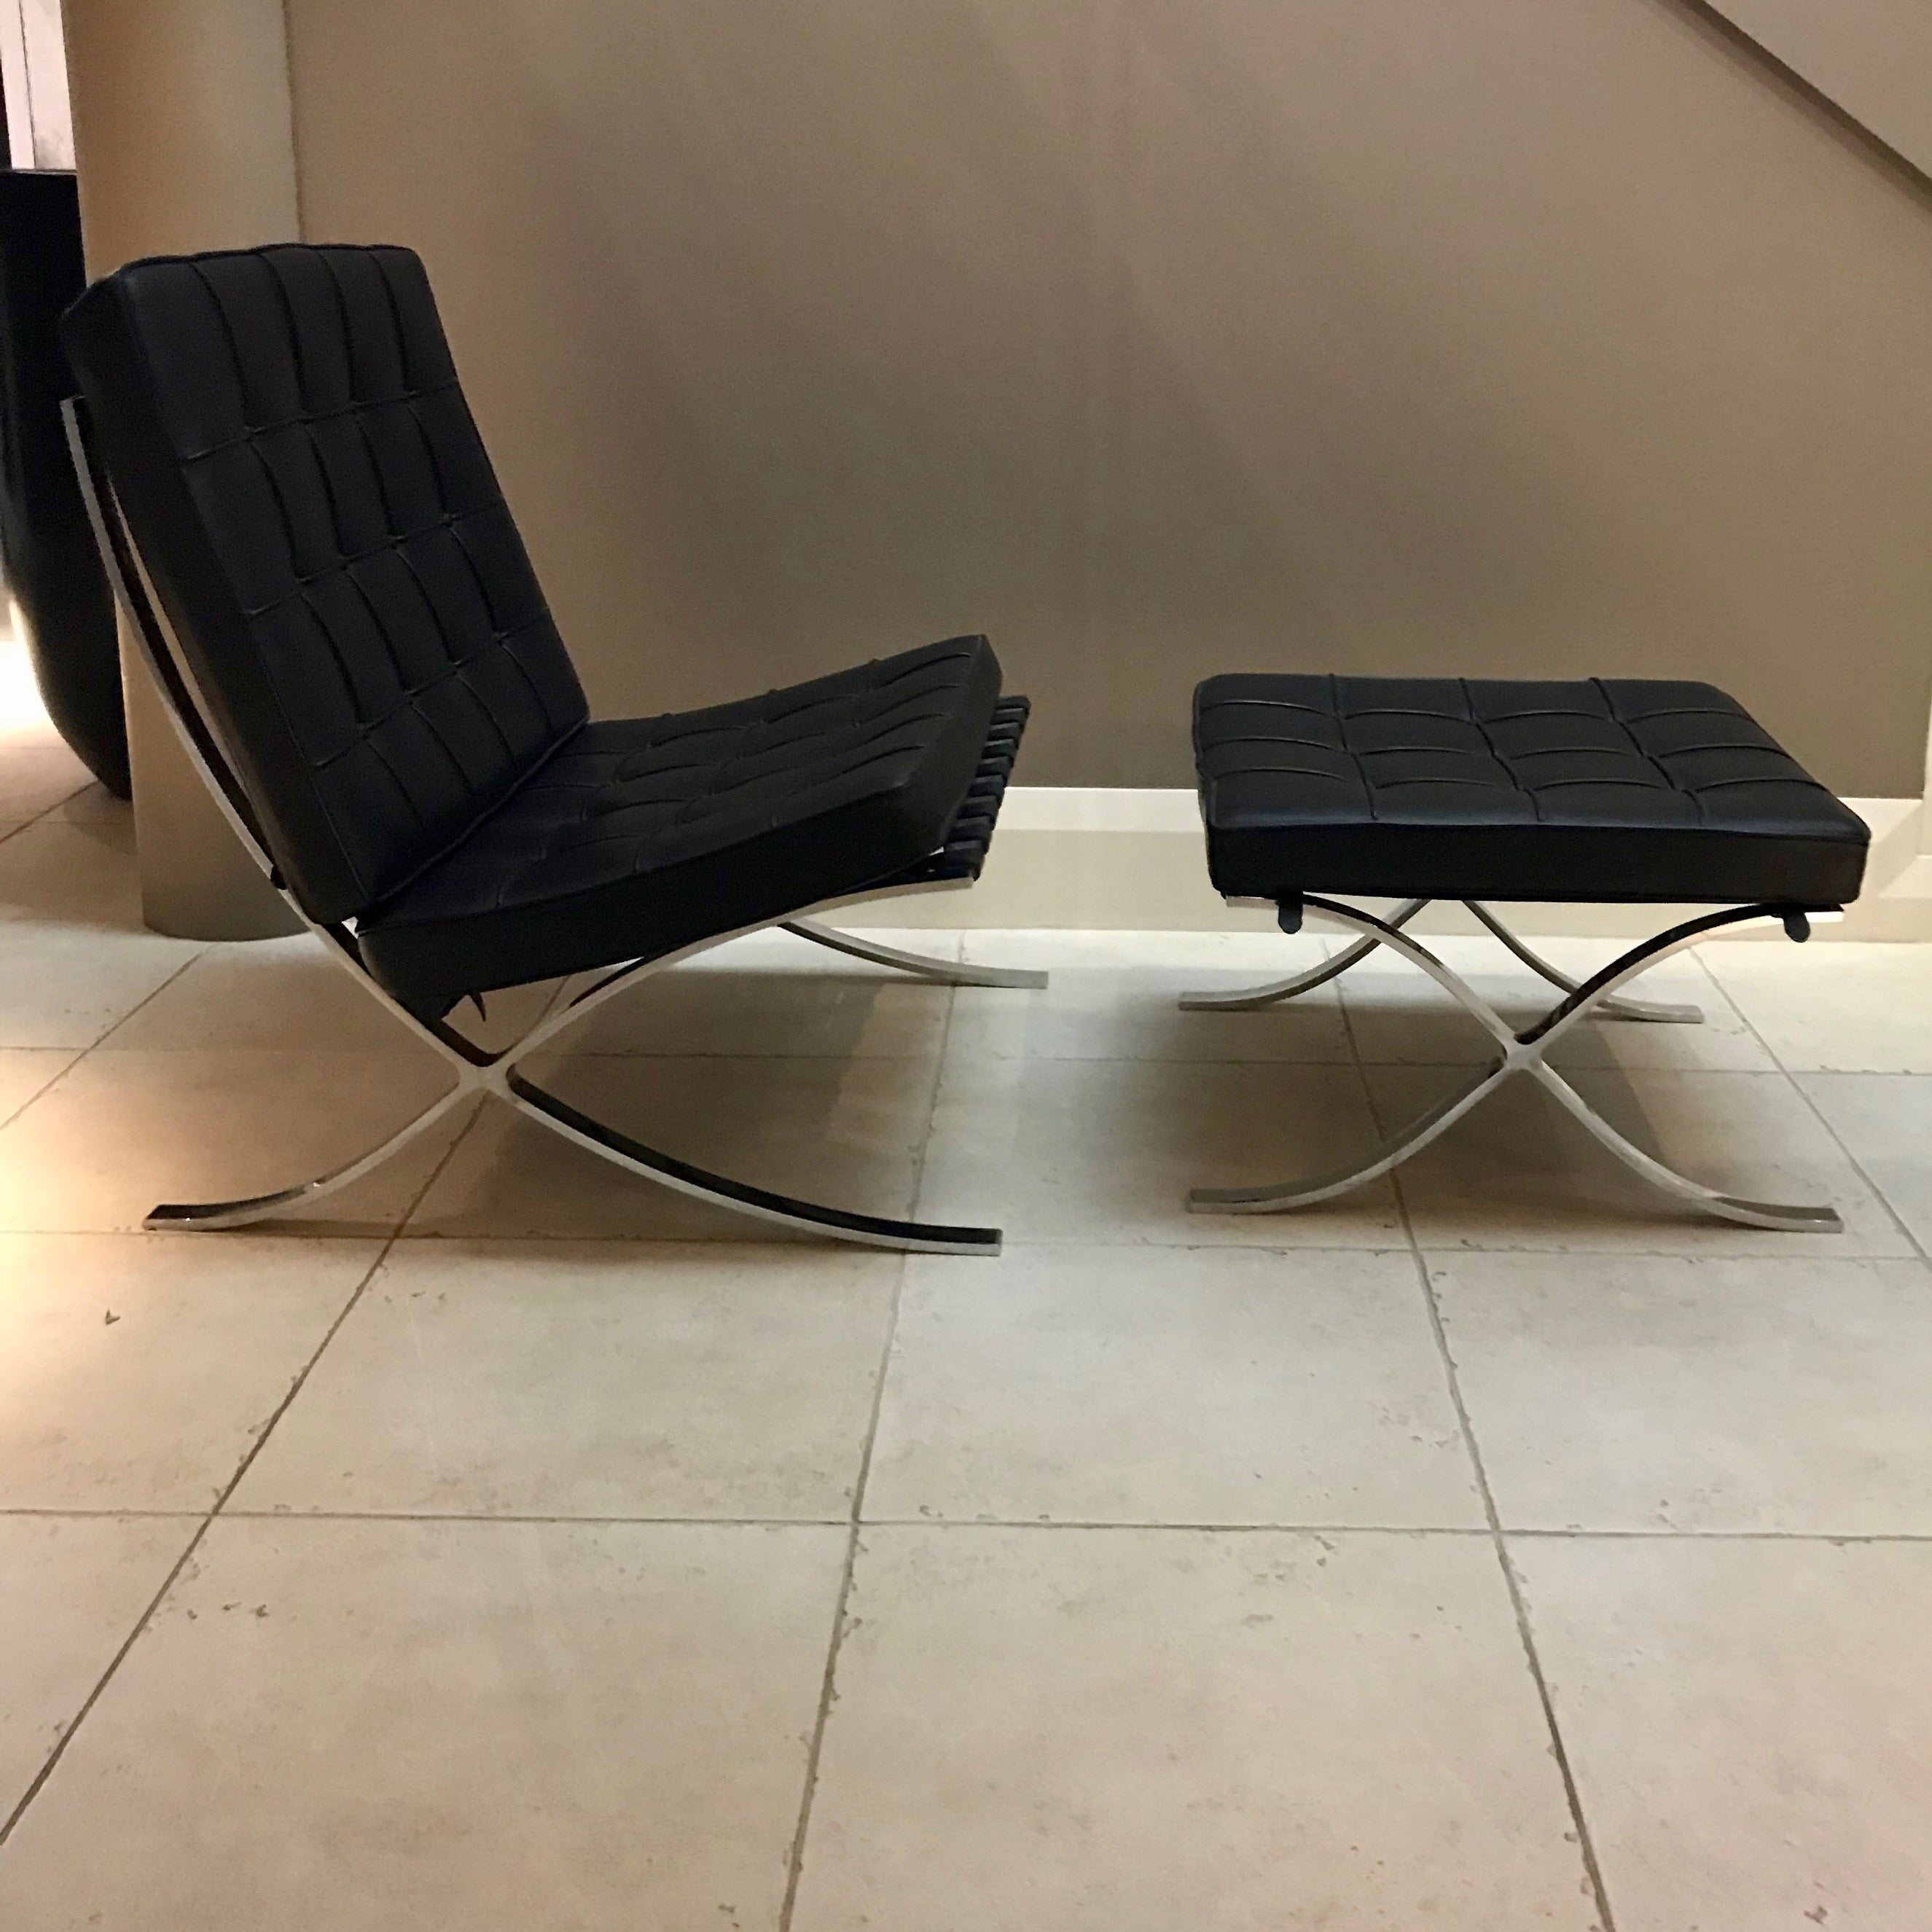 Barcelona Chair with Footstool by Ludwig Mies van der Rohe for Knoll